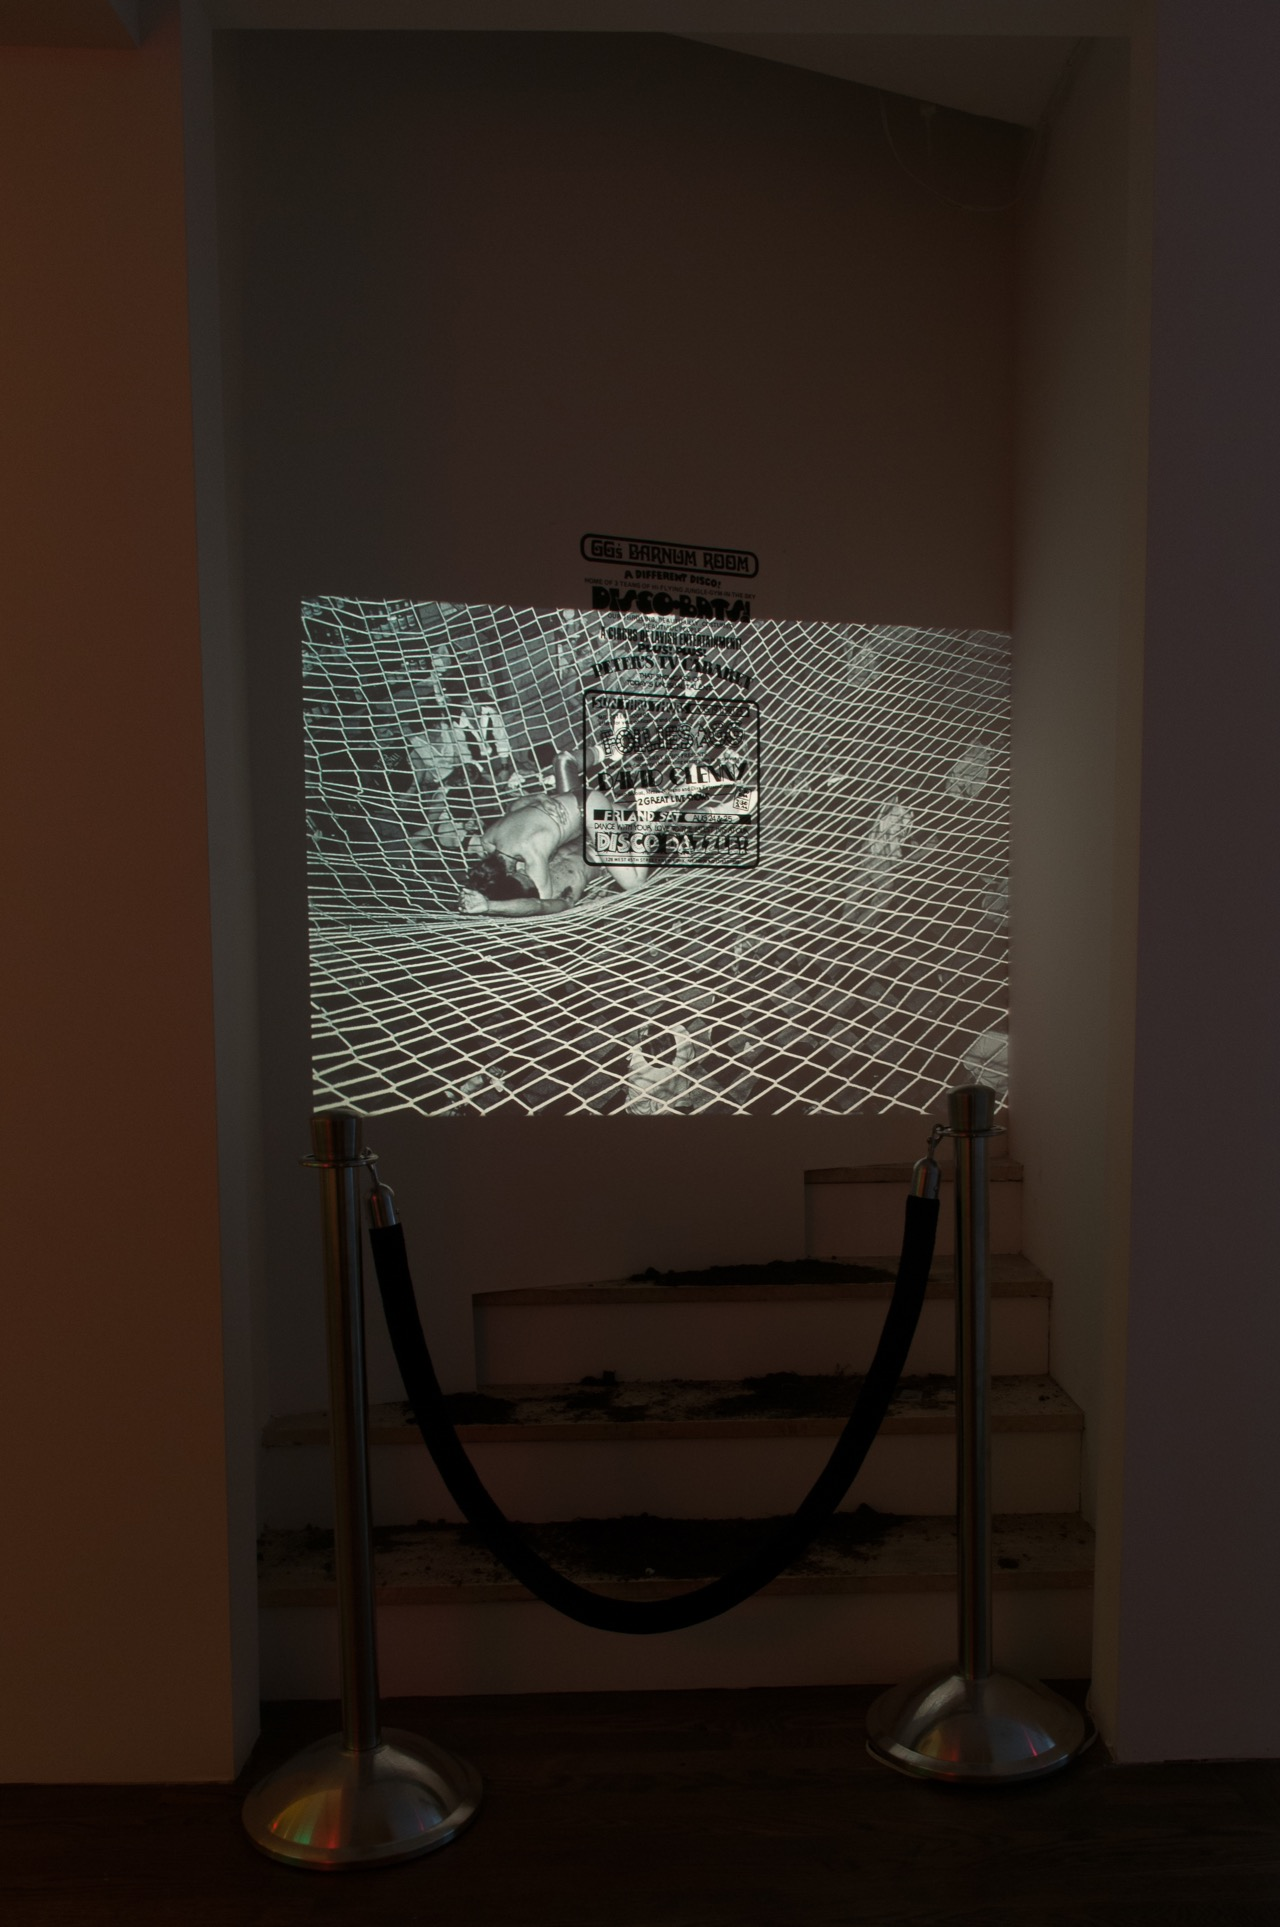 Hilton Als, Dirt Nap/Disco Nap, 2016, dimensions variable, slide projector, black velvet rope with stanchions, GG's Barnum Room poster; Projected slide: Bill Bernstein, GG's Barnum Room, Disco Bats on Net, 1979, dimensions variable, 35mm slide transfer